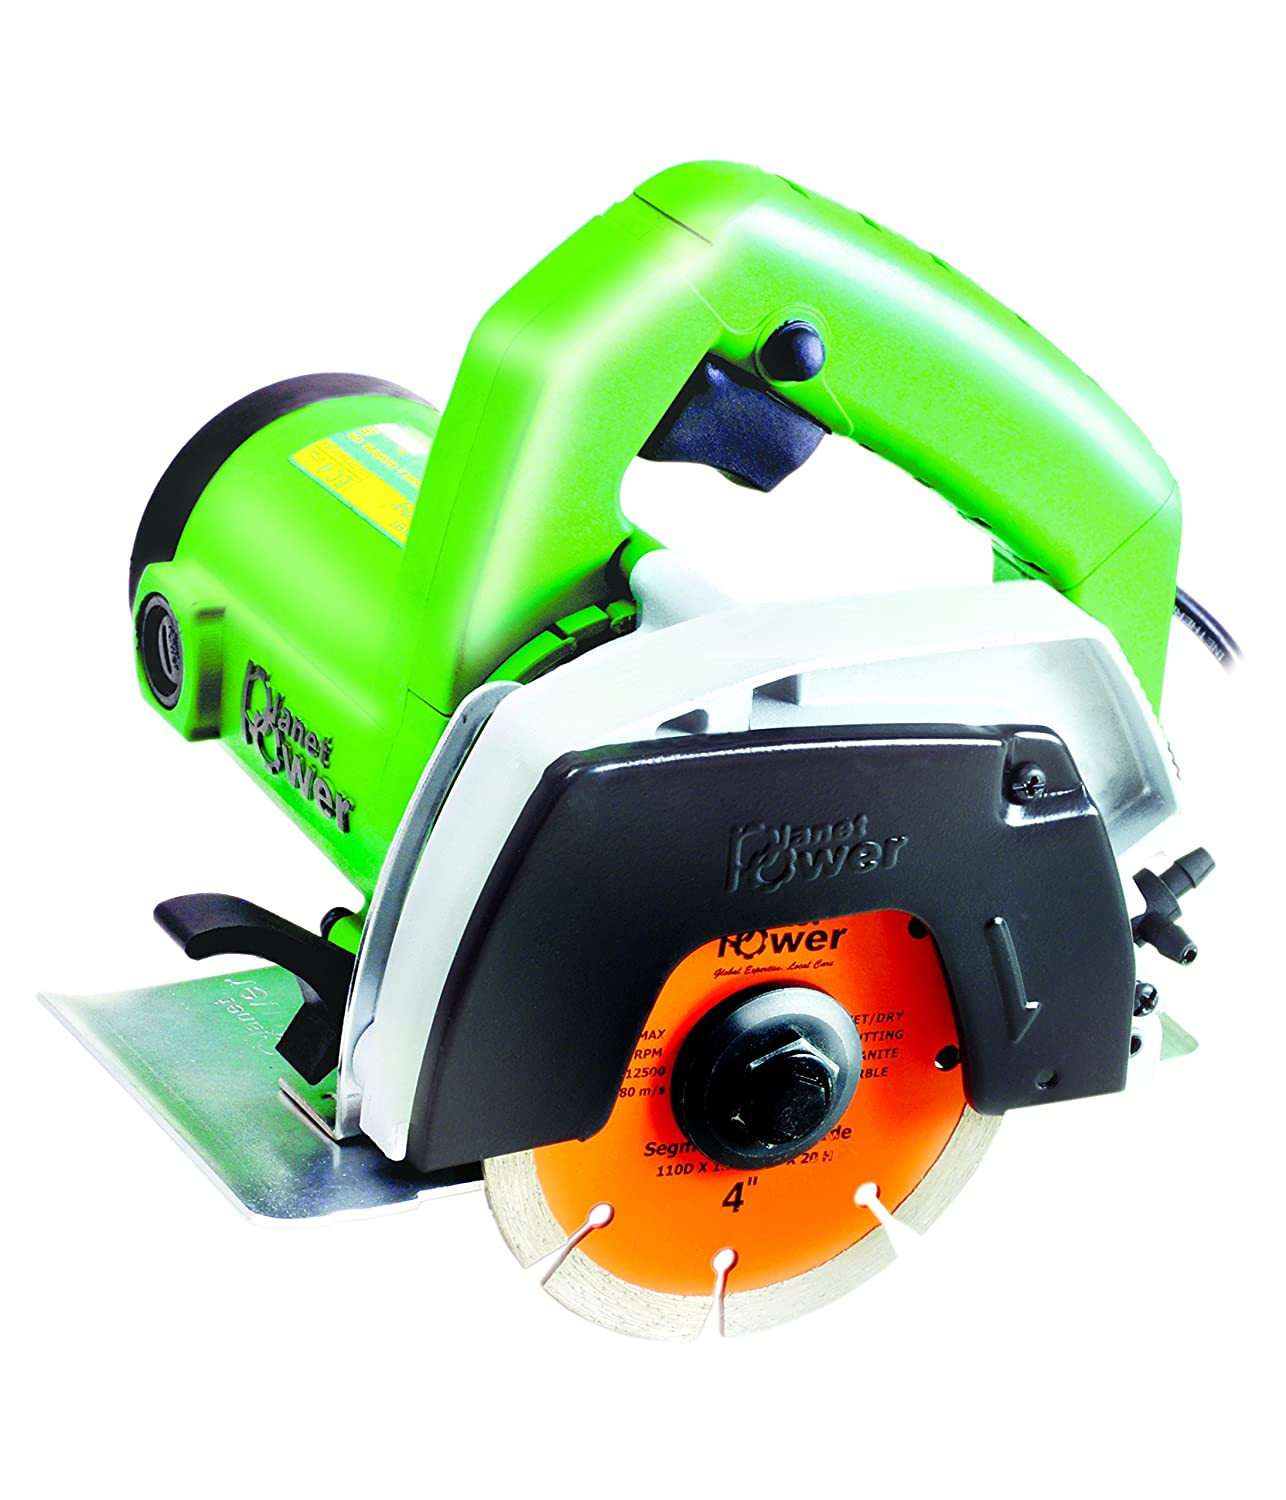 PLANET POWER 220 -230V 1200W EC4 Tile/Wood Cutter without Cutting Blade (4 Inch)